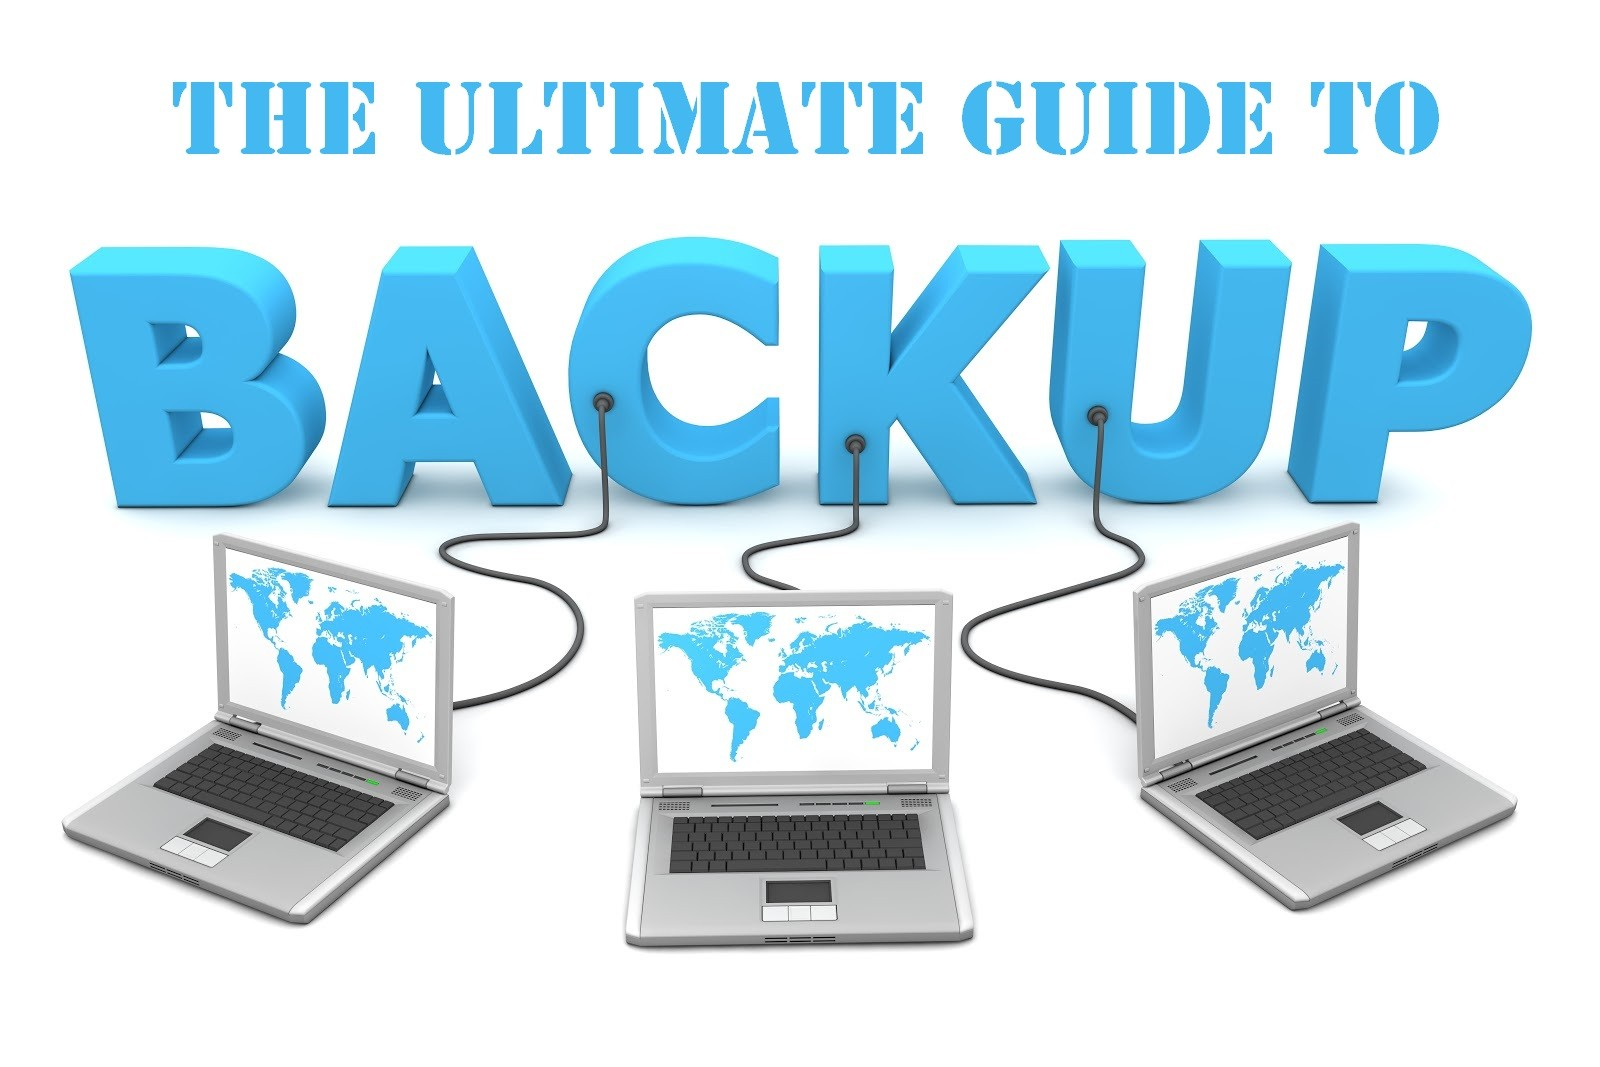 The Ultimate Guide to BACKUP